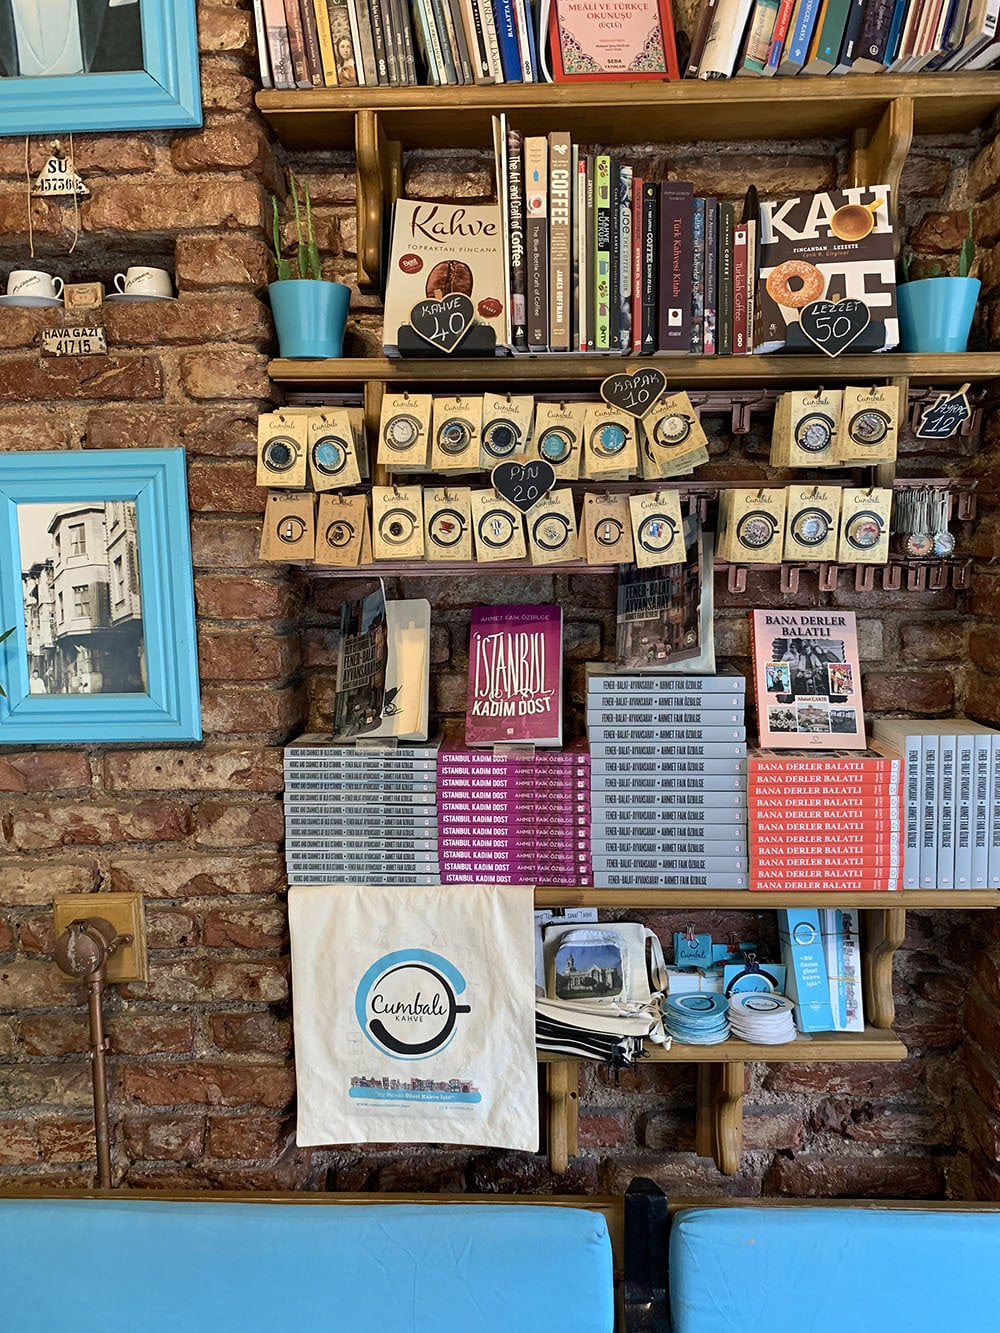 The blue-painted Cumbali Kahve coffee shop is steps away from the Ahrida Synagogue in Balat.